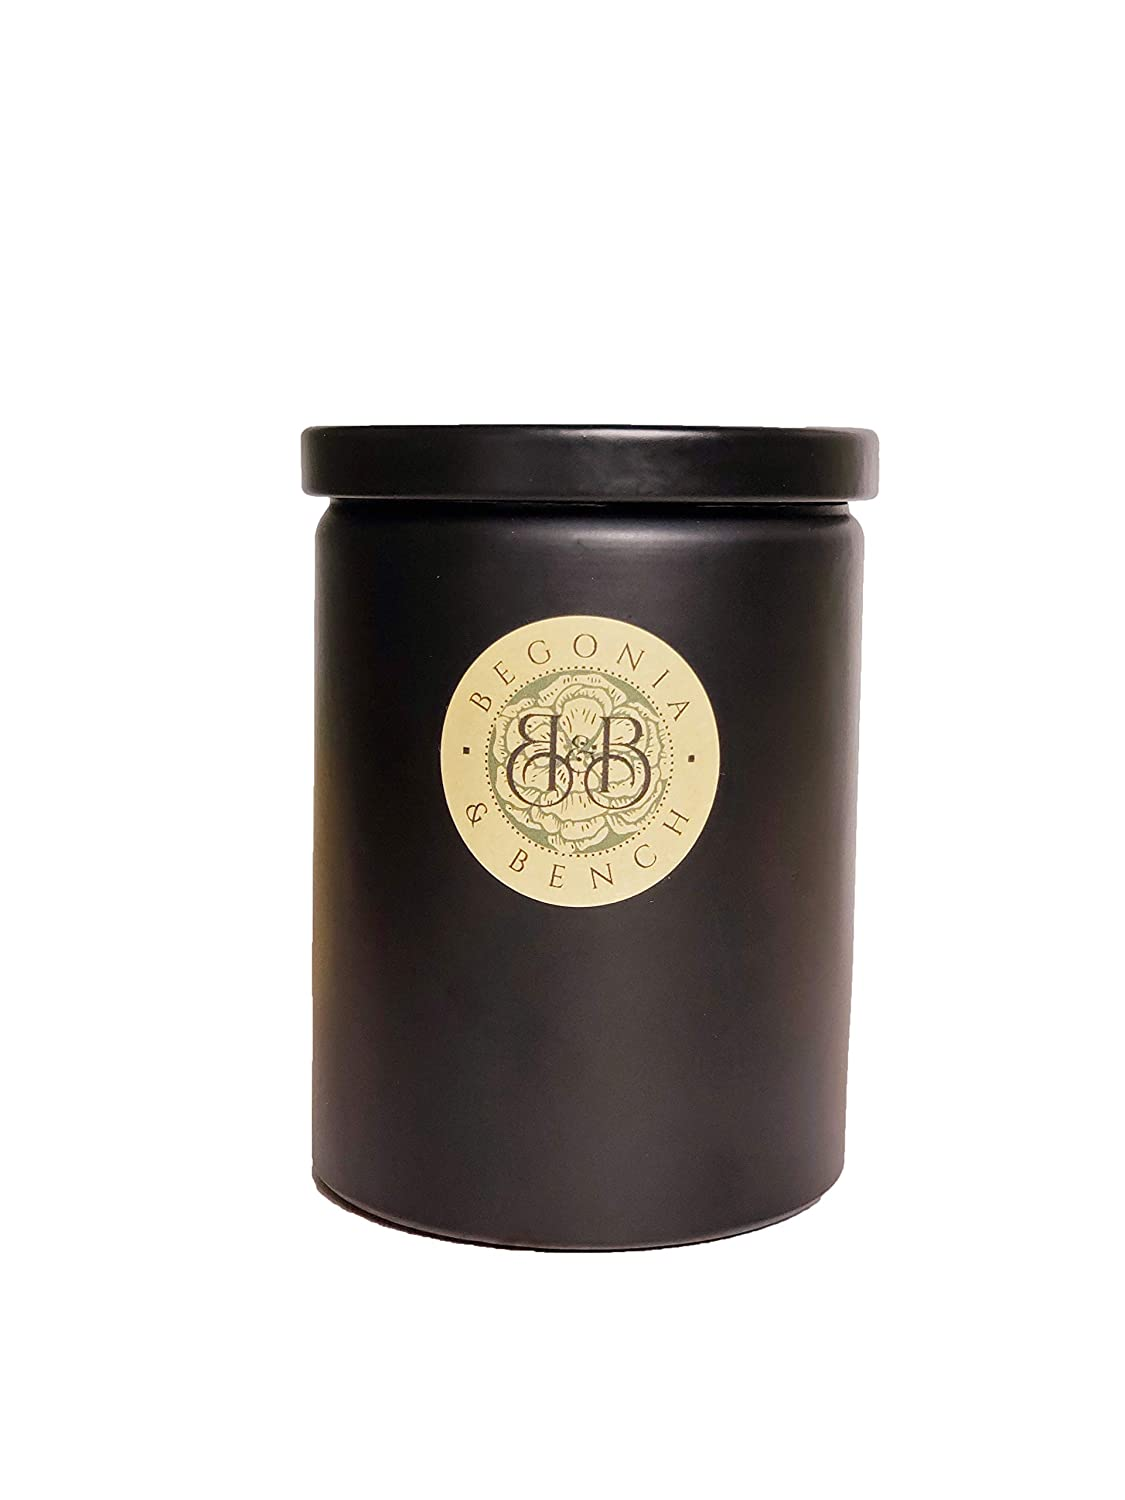 Begonia & Bench, Aromatherapy Botanical Candle, 12 ounce, Slate Scent, Pack of 1